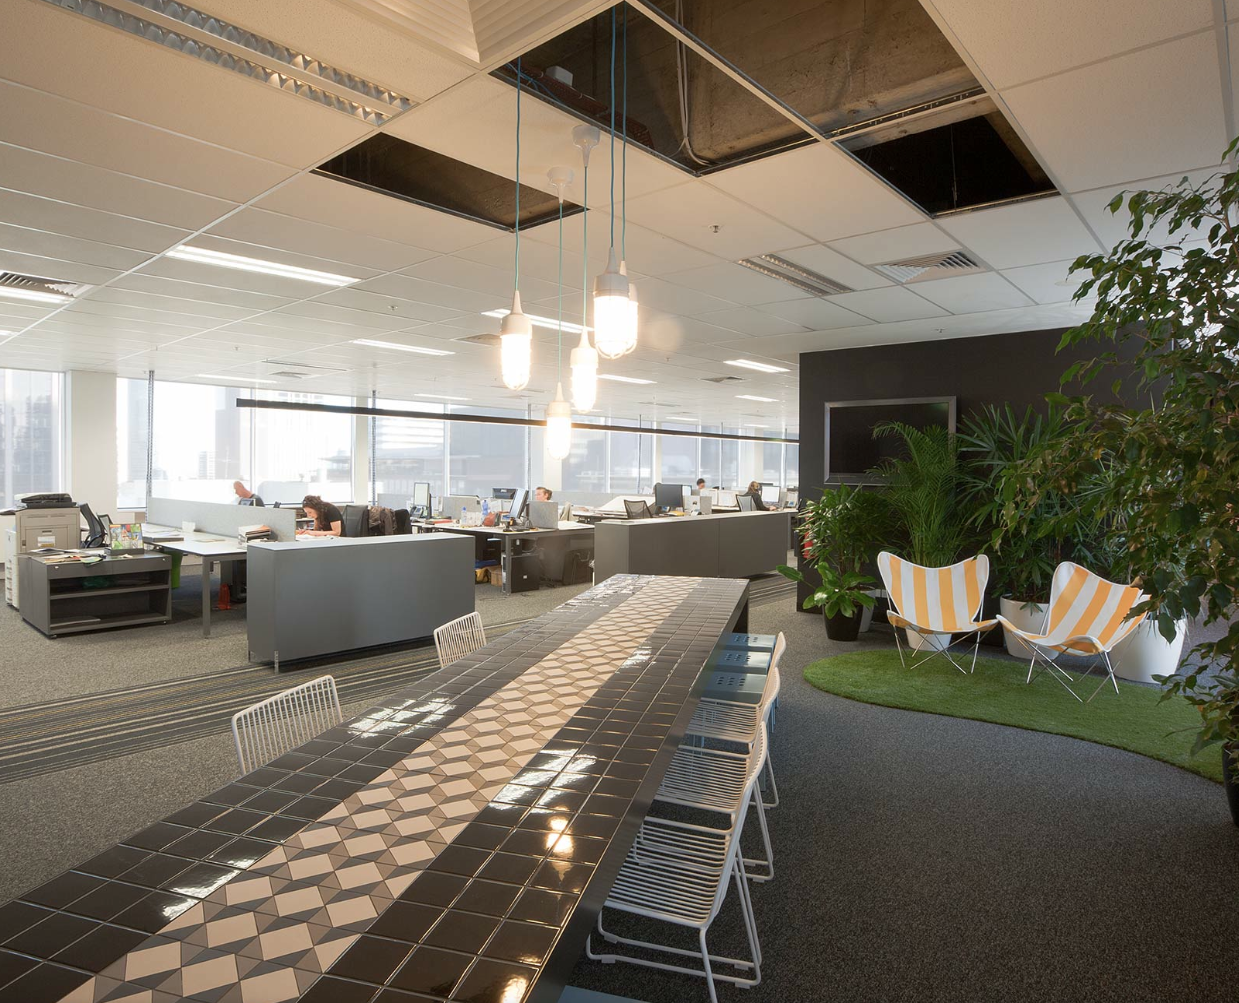 cool office space designs. Red Design Group, Melbourne Office - Creates Distinct Areas In Open Plan With\u2026 Cool Space Designs